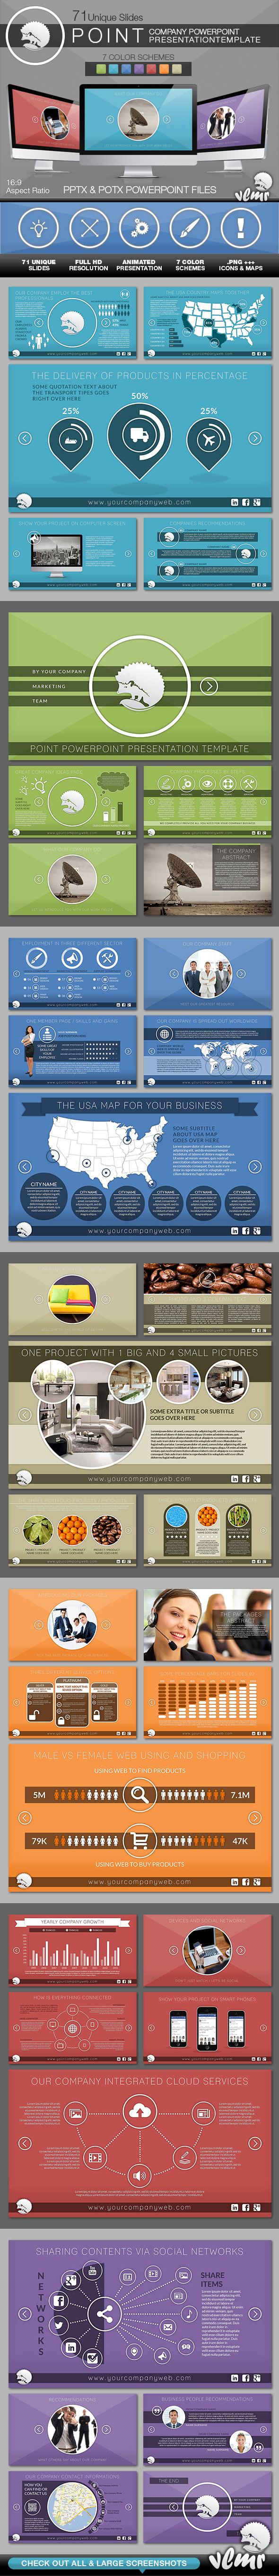 Point Company PowerPoint Presentation Template